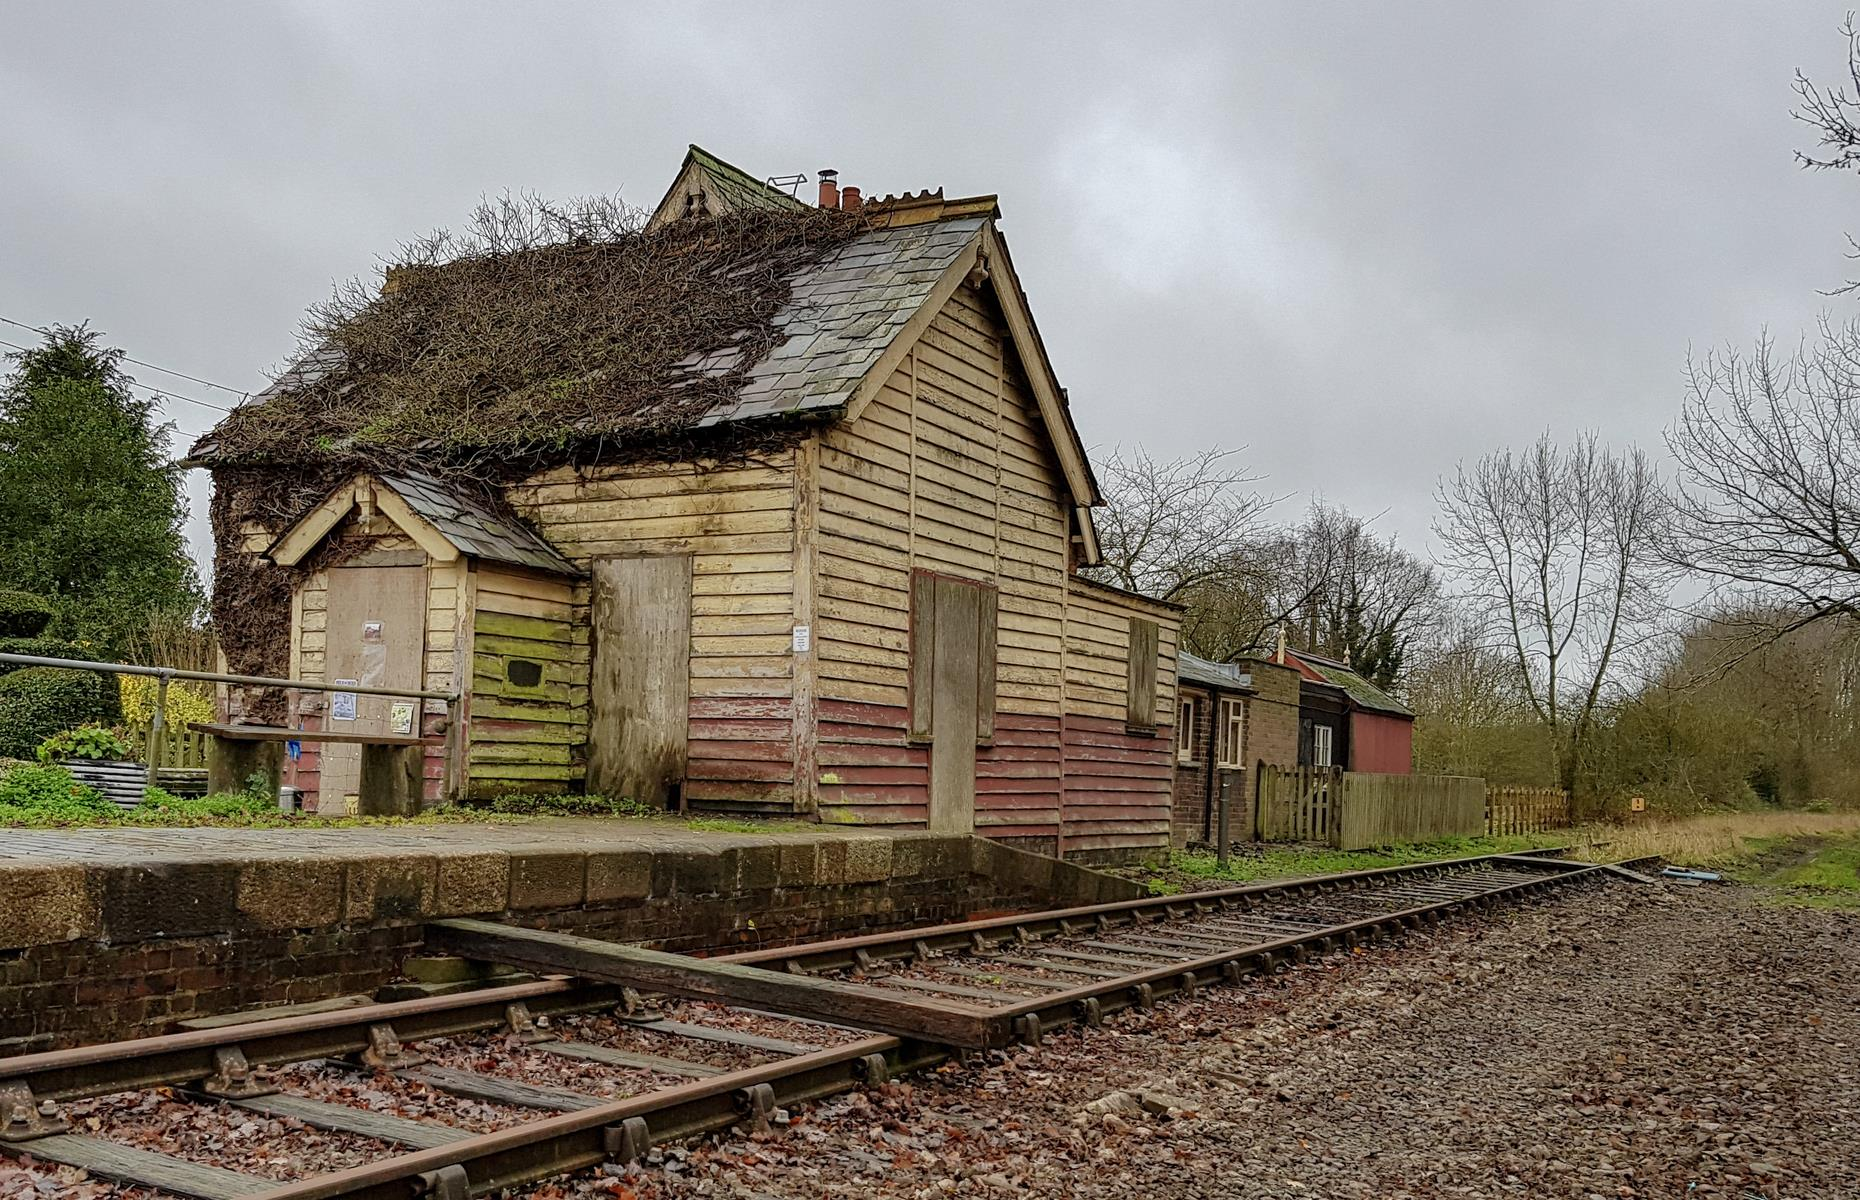 Slide 23 of 33: No one has alighted onto the platform at this remote and rural station in Buckinghamshire since 1968, though the buildings remain, derelict and unused. The station, which is actually a mile away from the village of Swanbourne, was on the Oxford to Bletchley line and operated by Buckinghamshire Railway when it opened in the 1800s.